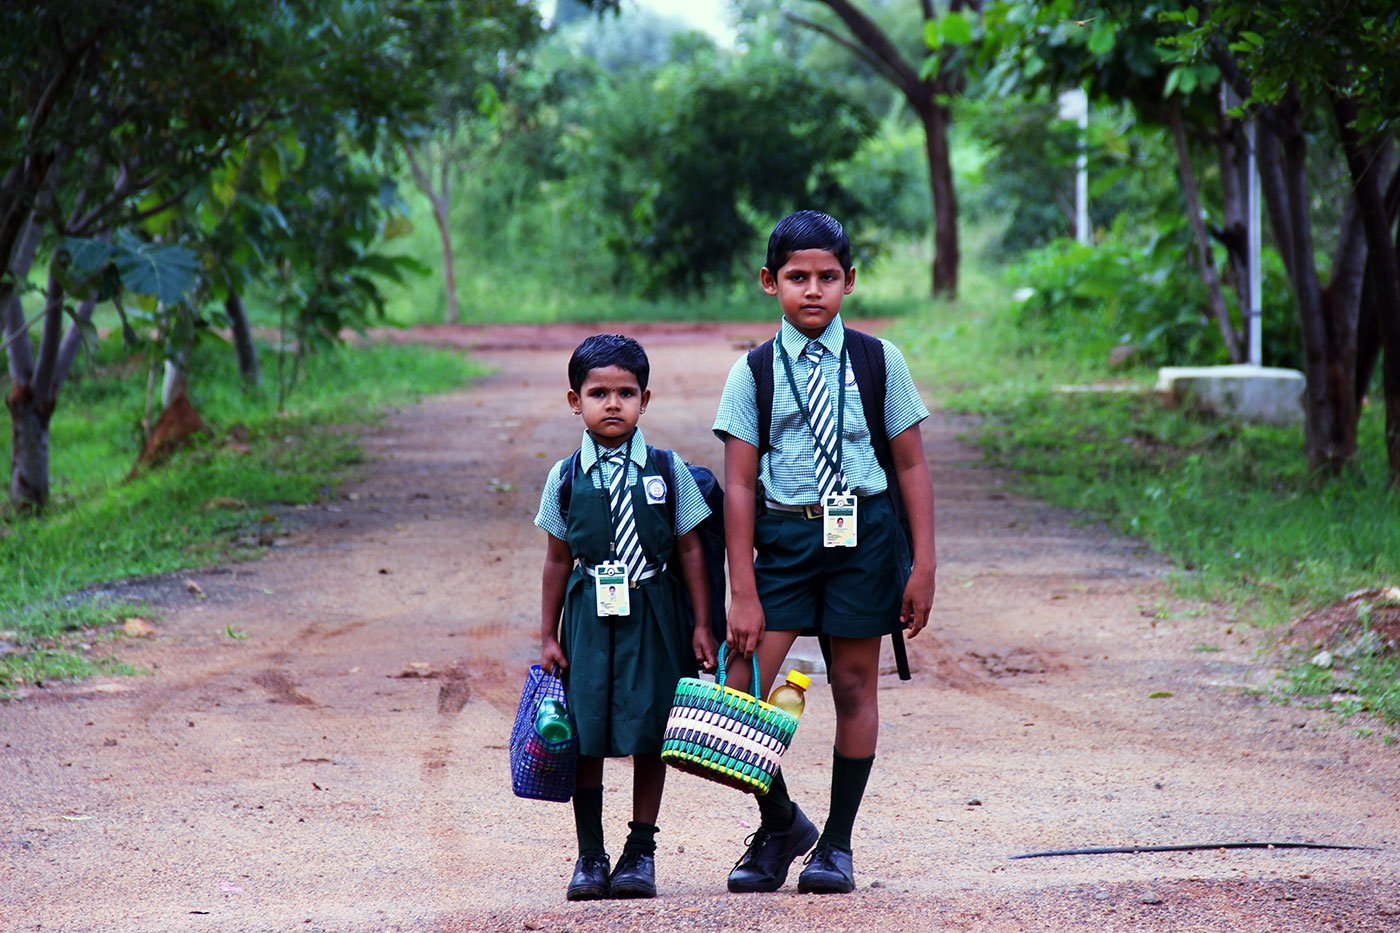 Dhanush Kumar and Iniya on their way to school